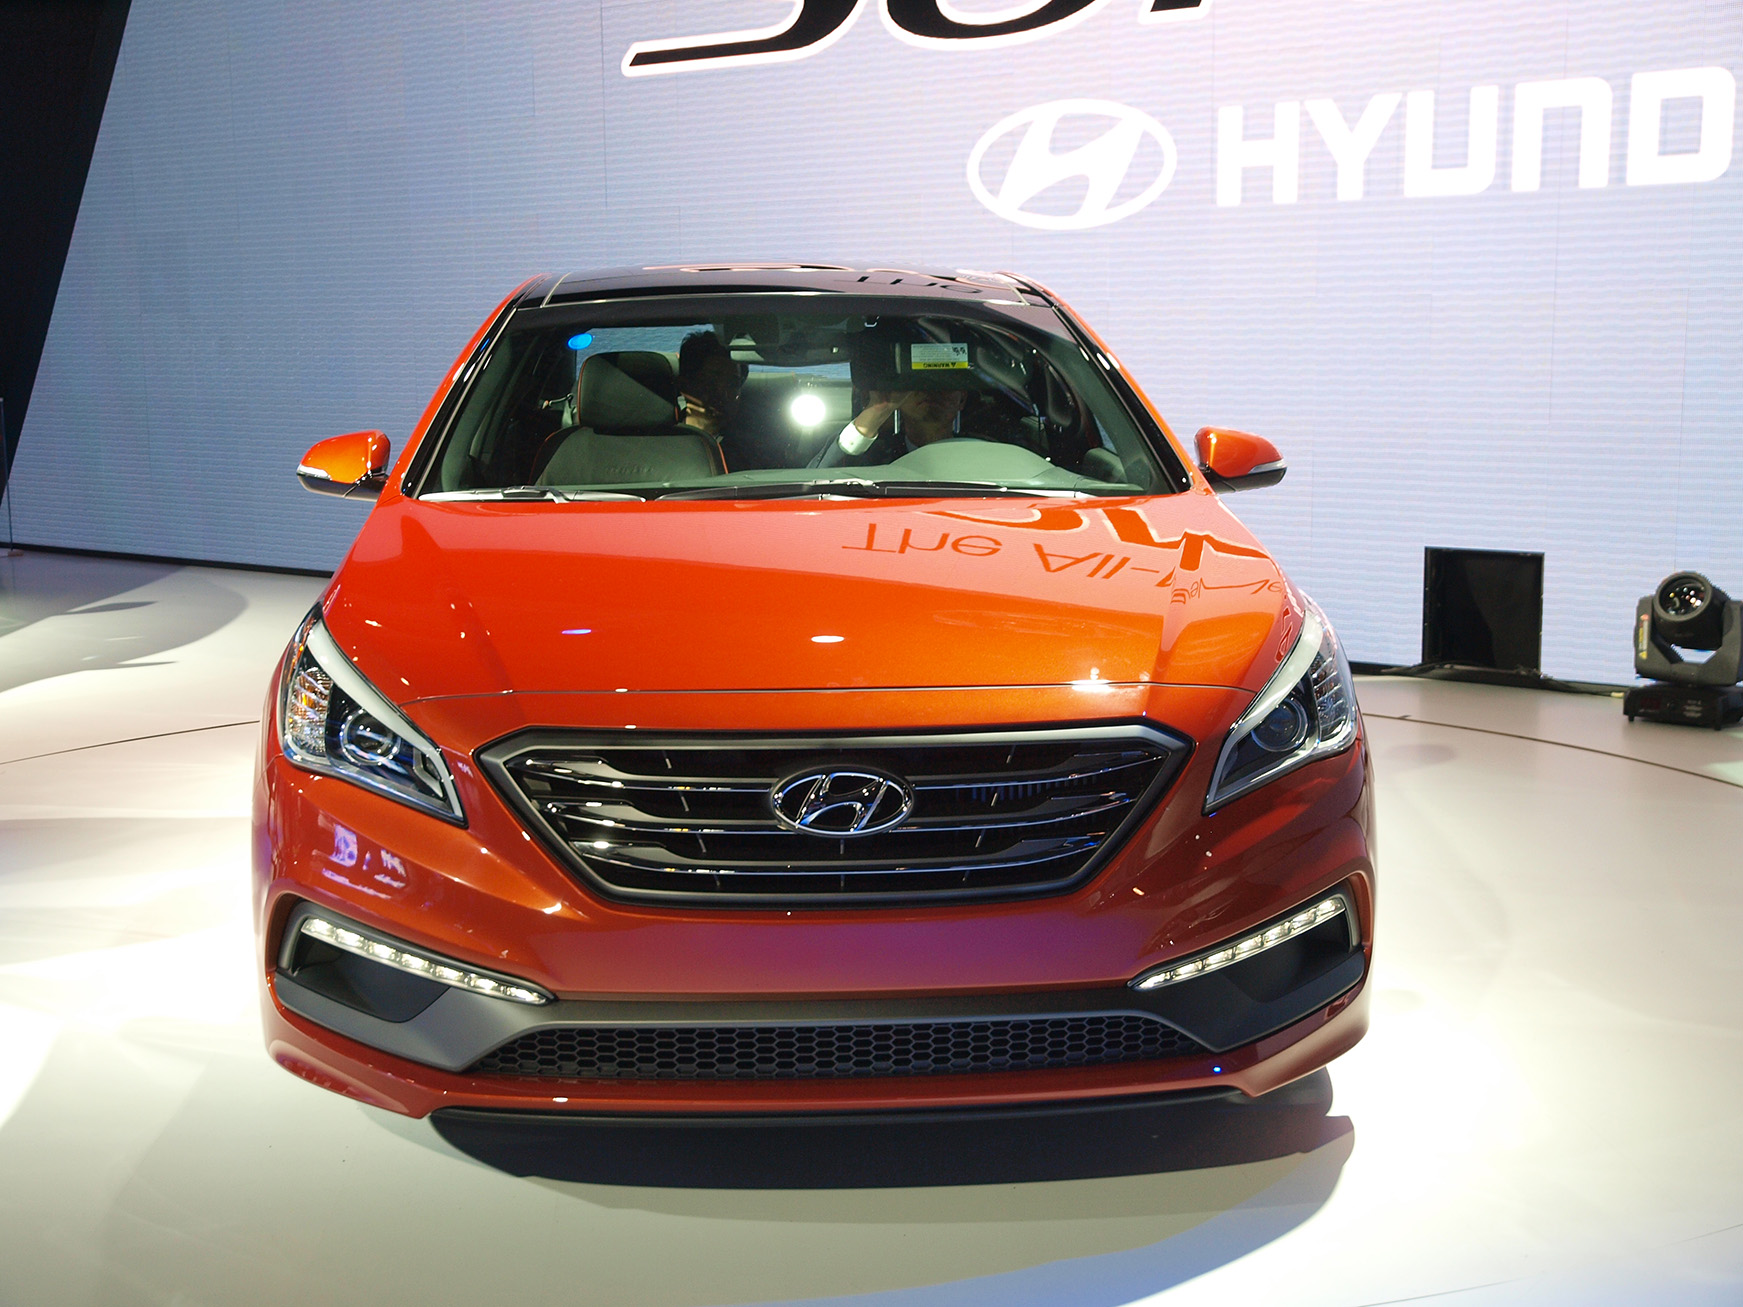 Hyundai Sonata 2015 Fuse Box Diagram Auto Genius Car Photo 2008 Azera 2014 Information Makes Show Debut In New York Paul Tan